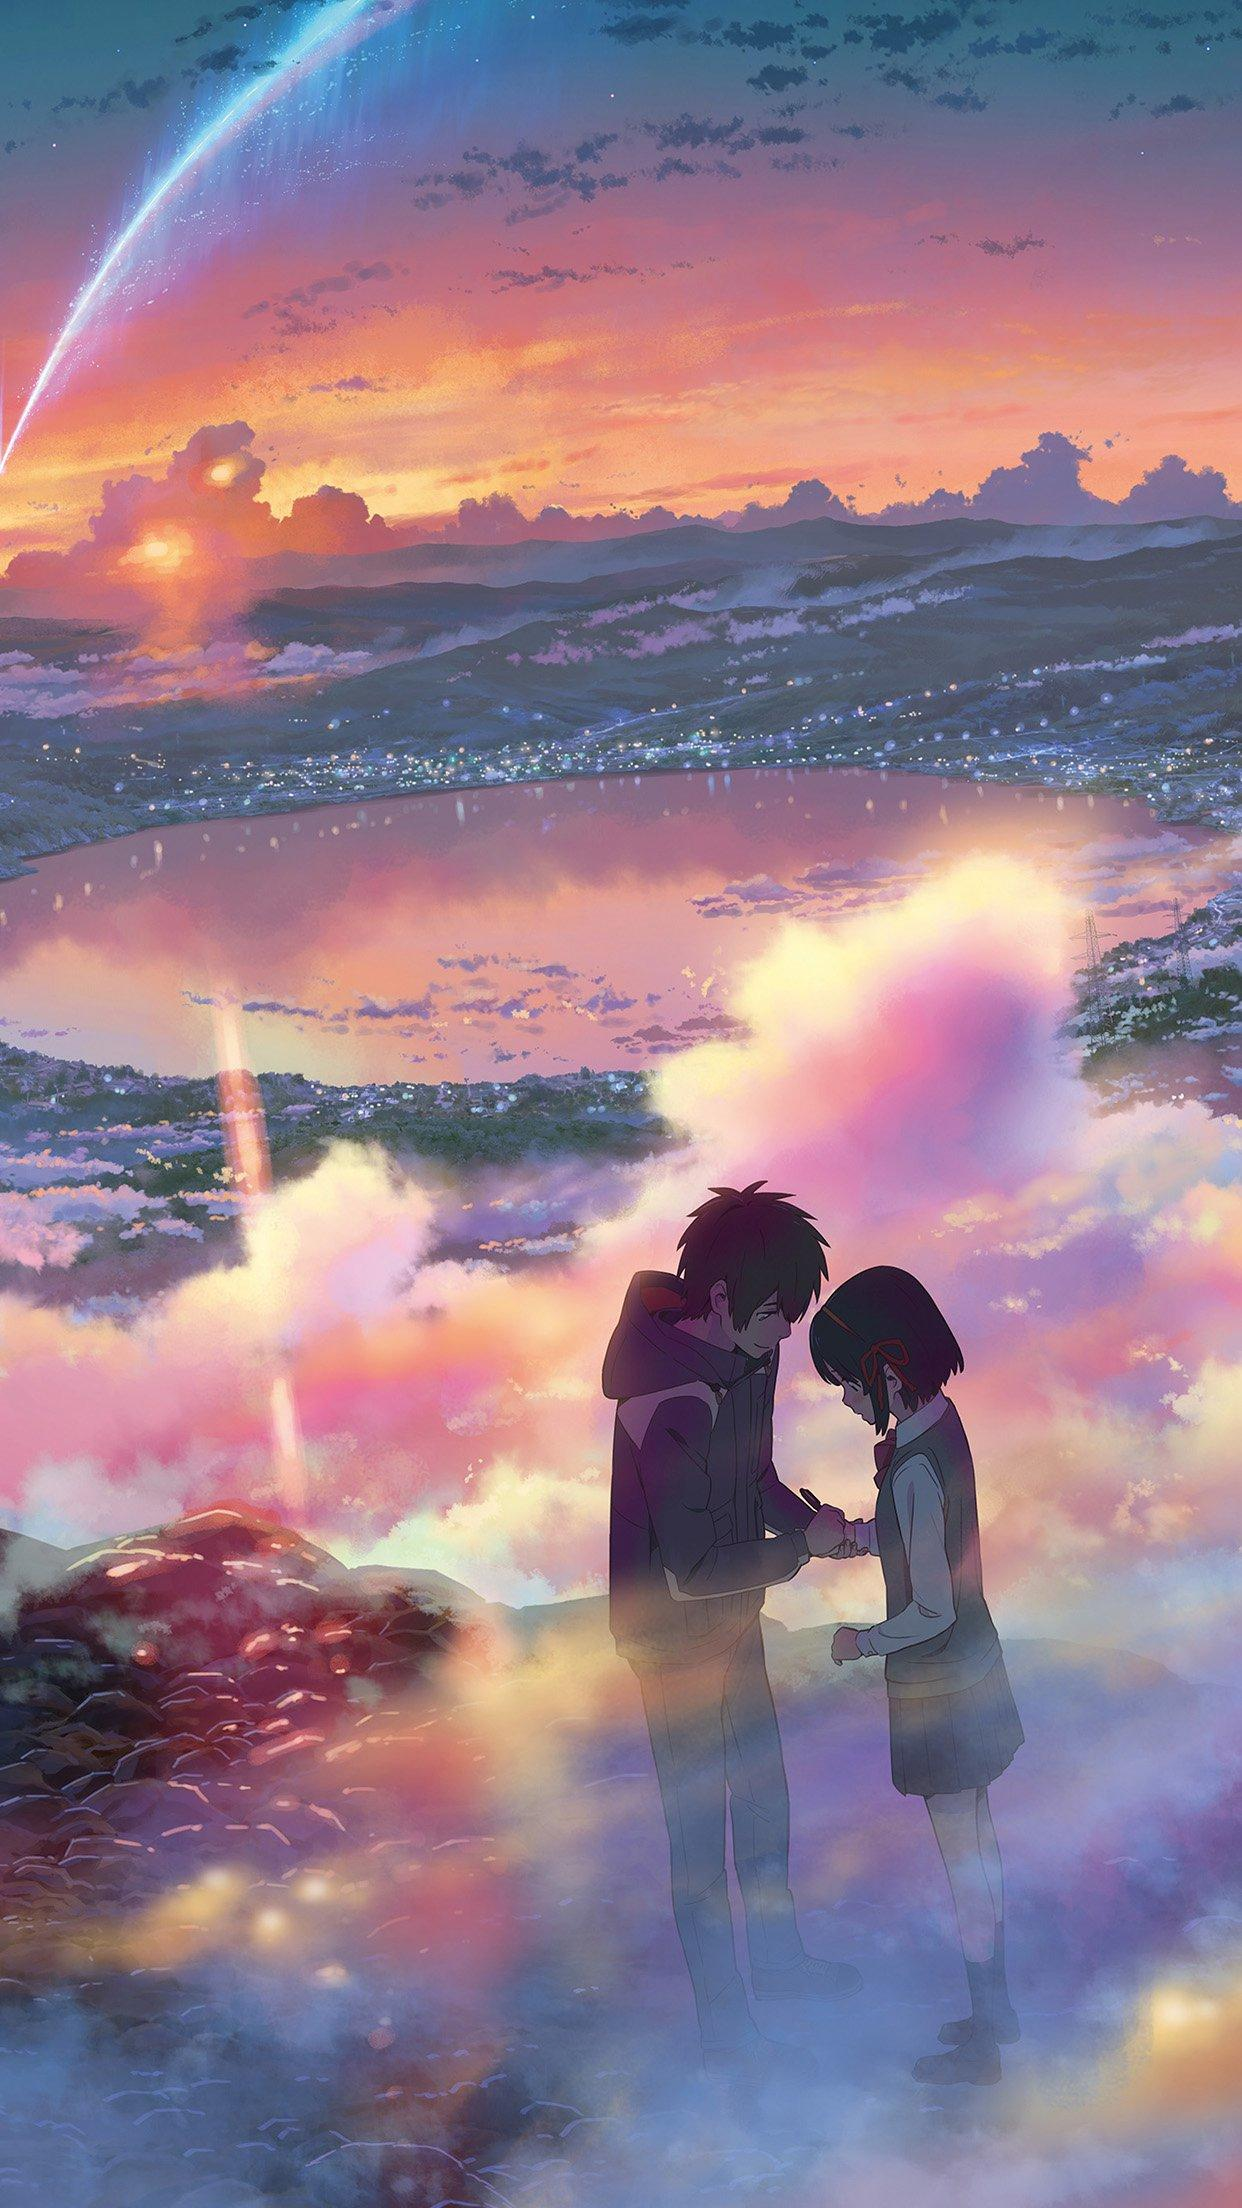 Your Name Anime Hd Wallpapers Wallpaper Cave